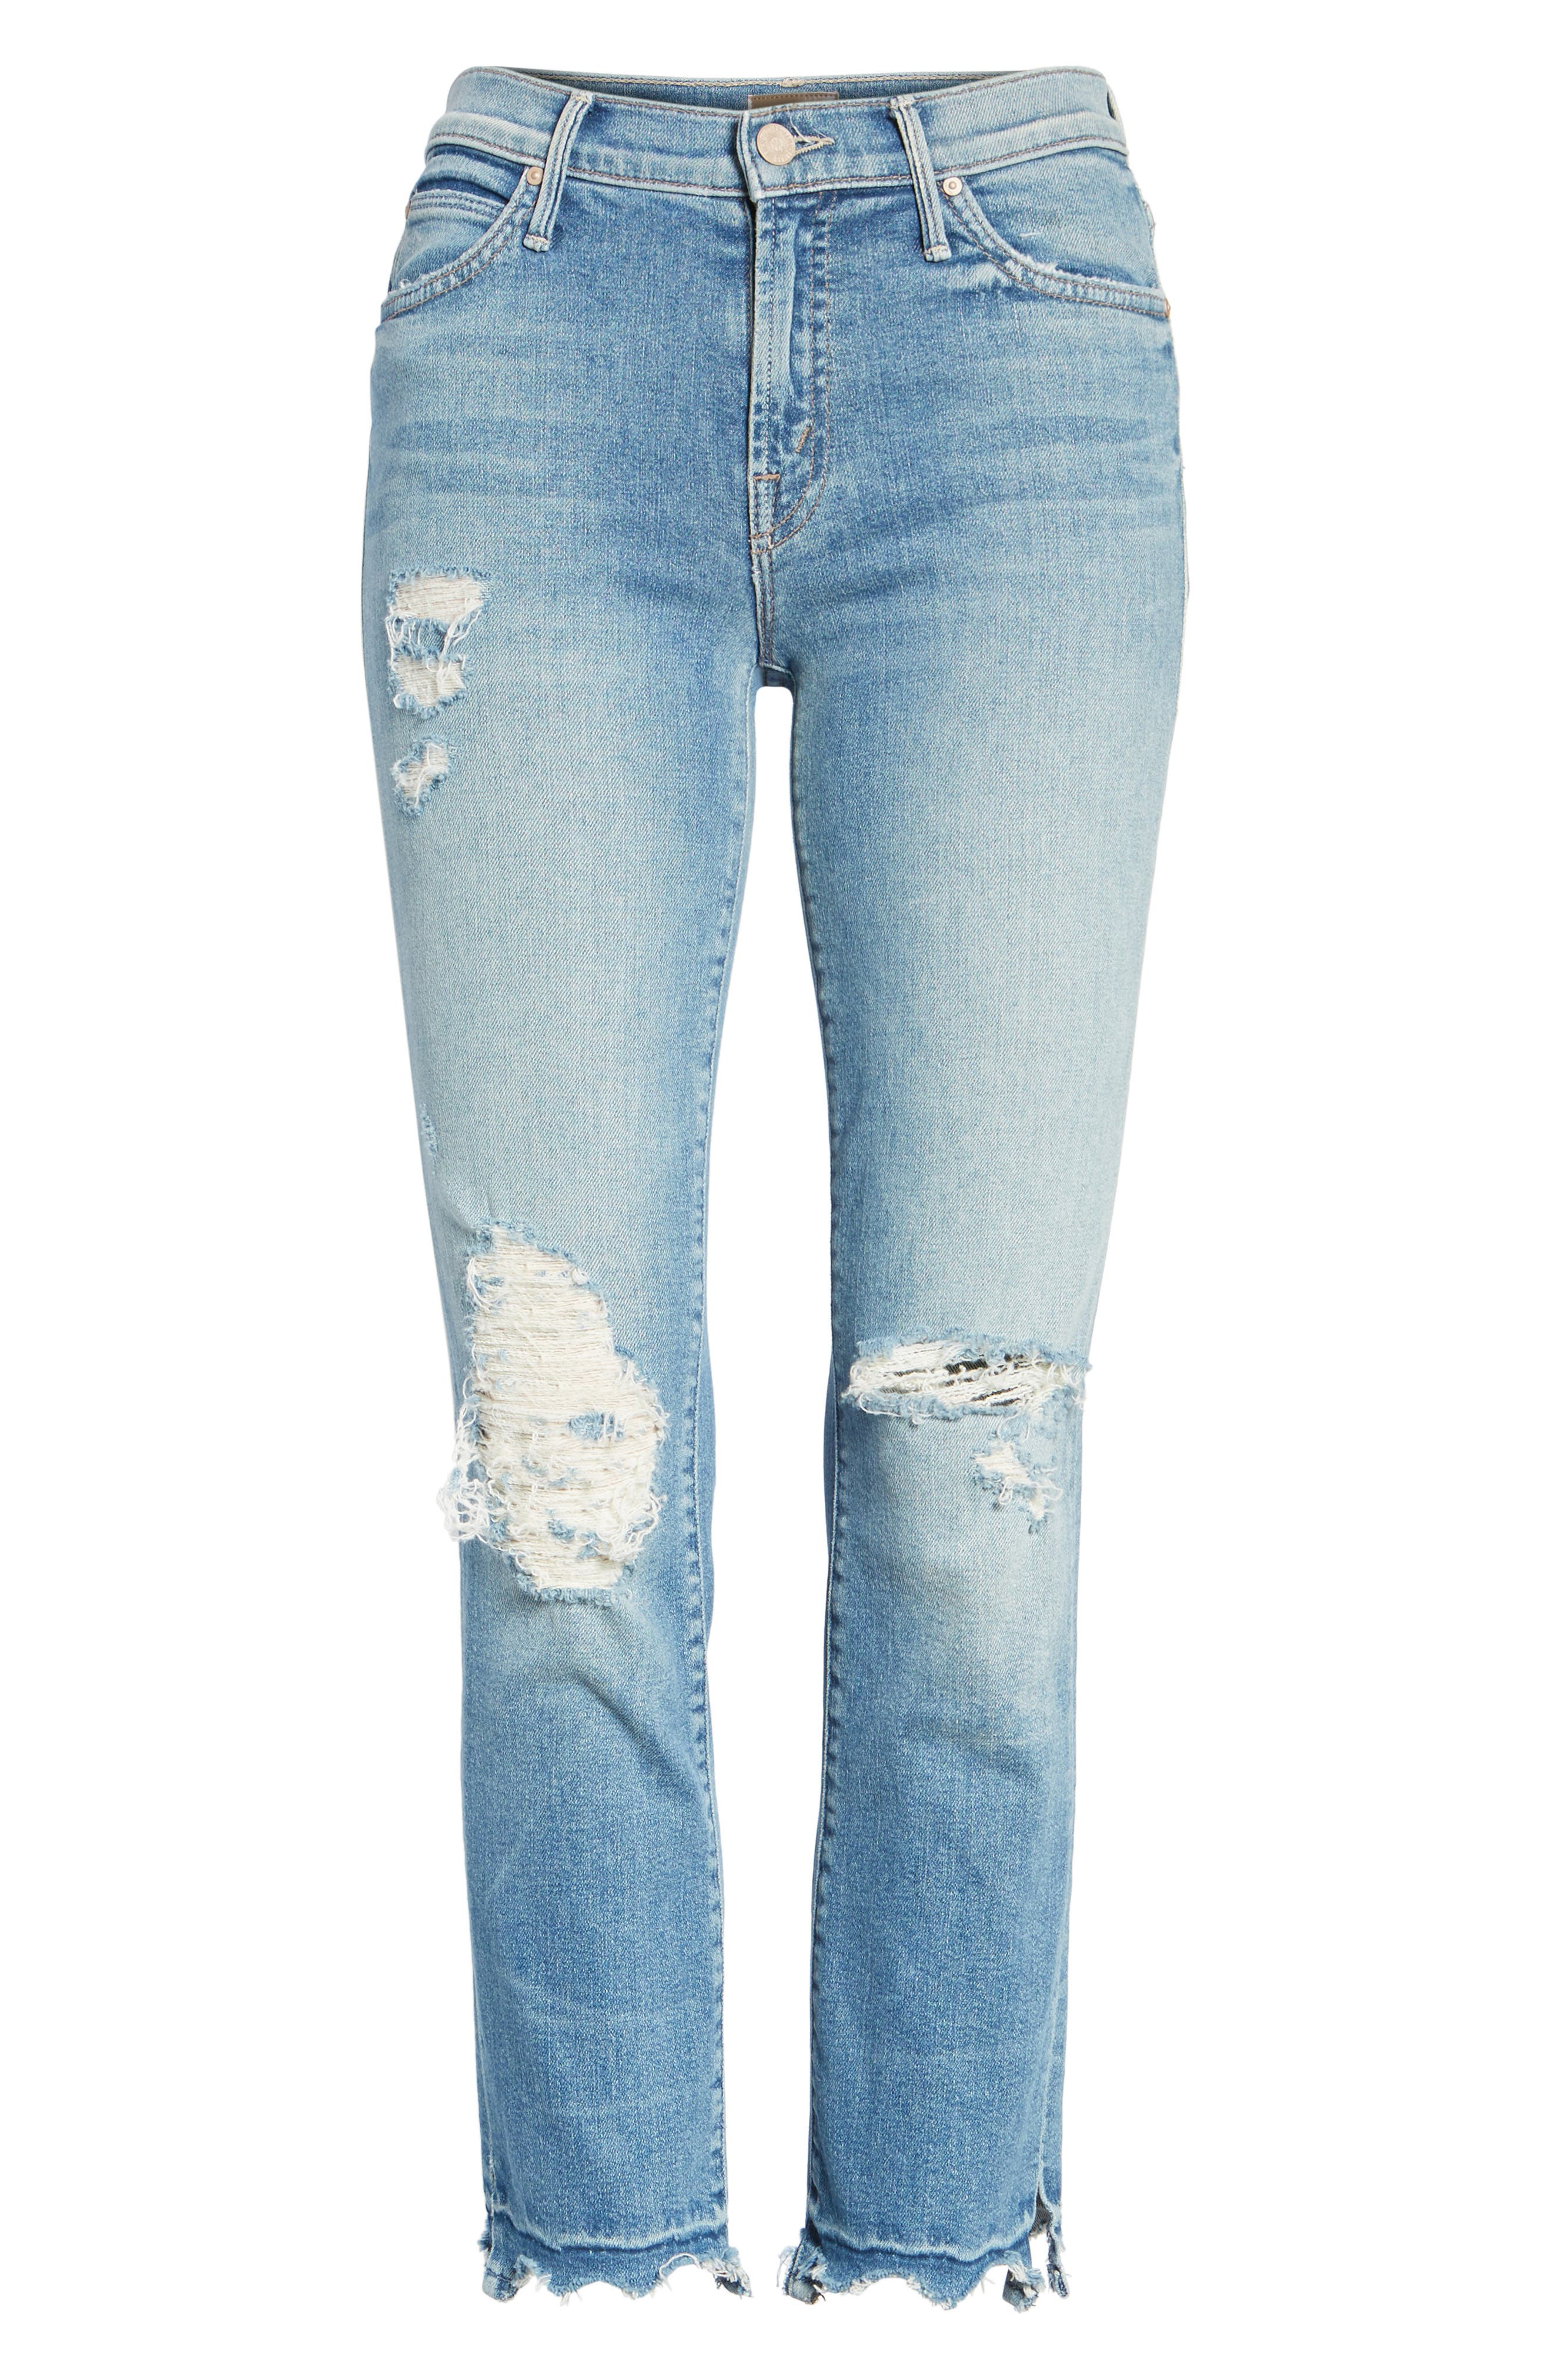 The Rascal High Waist Ankle Jeans,                             Alternate thumbnail 7, color,                             Push The Envelope